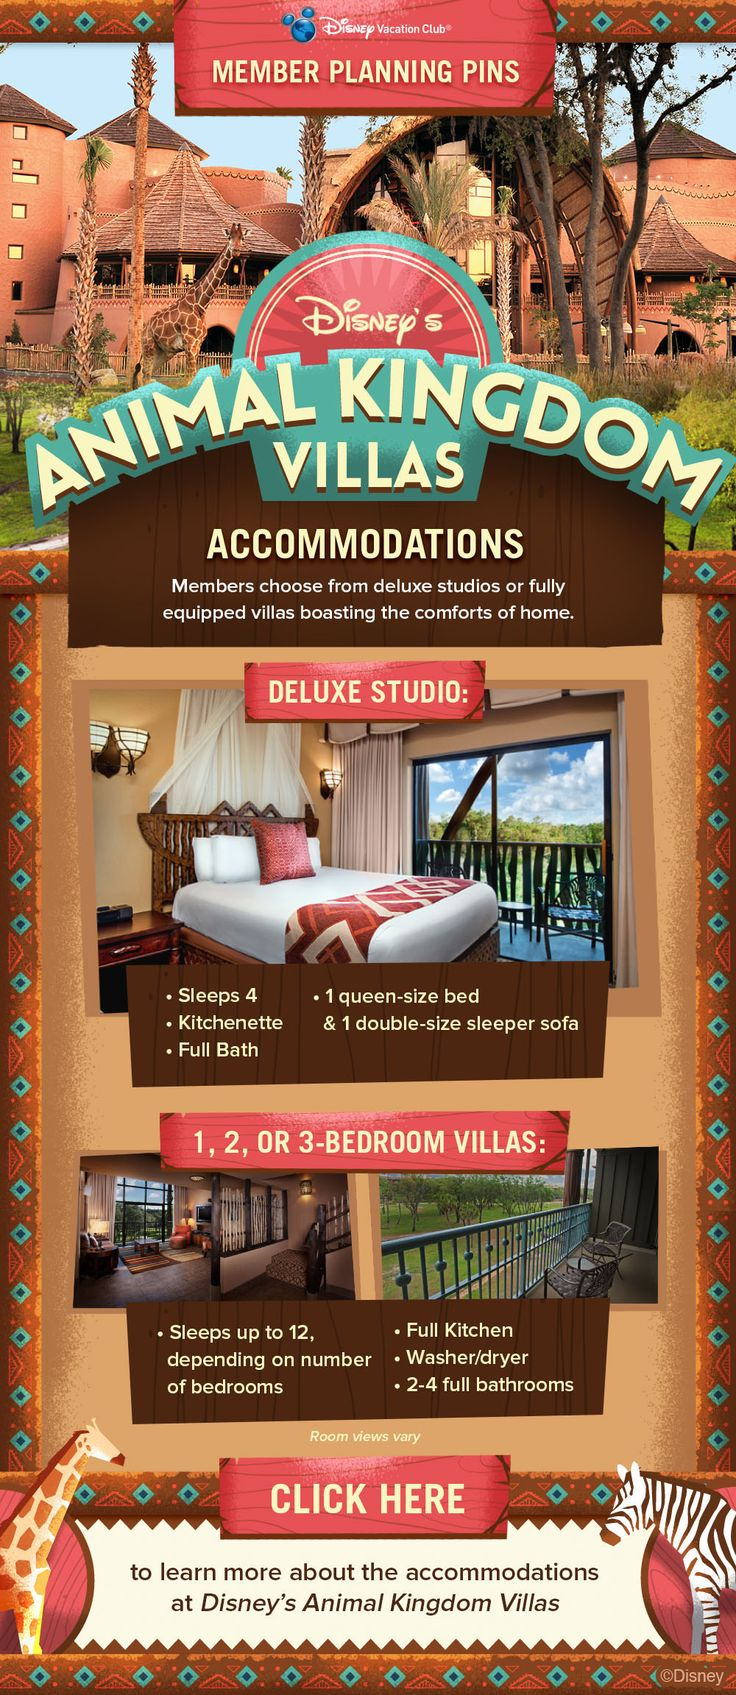 Plan your next Disney Vacation Club vacation with these Member Planning Pins!